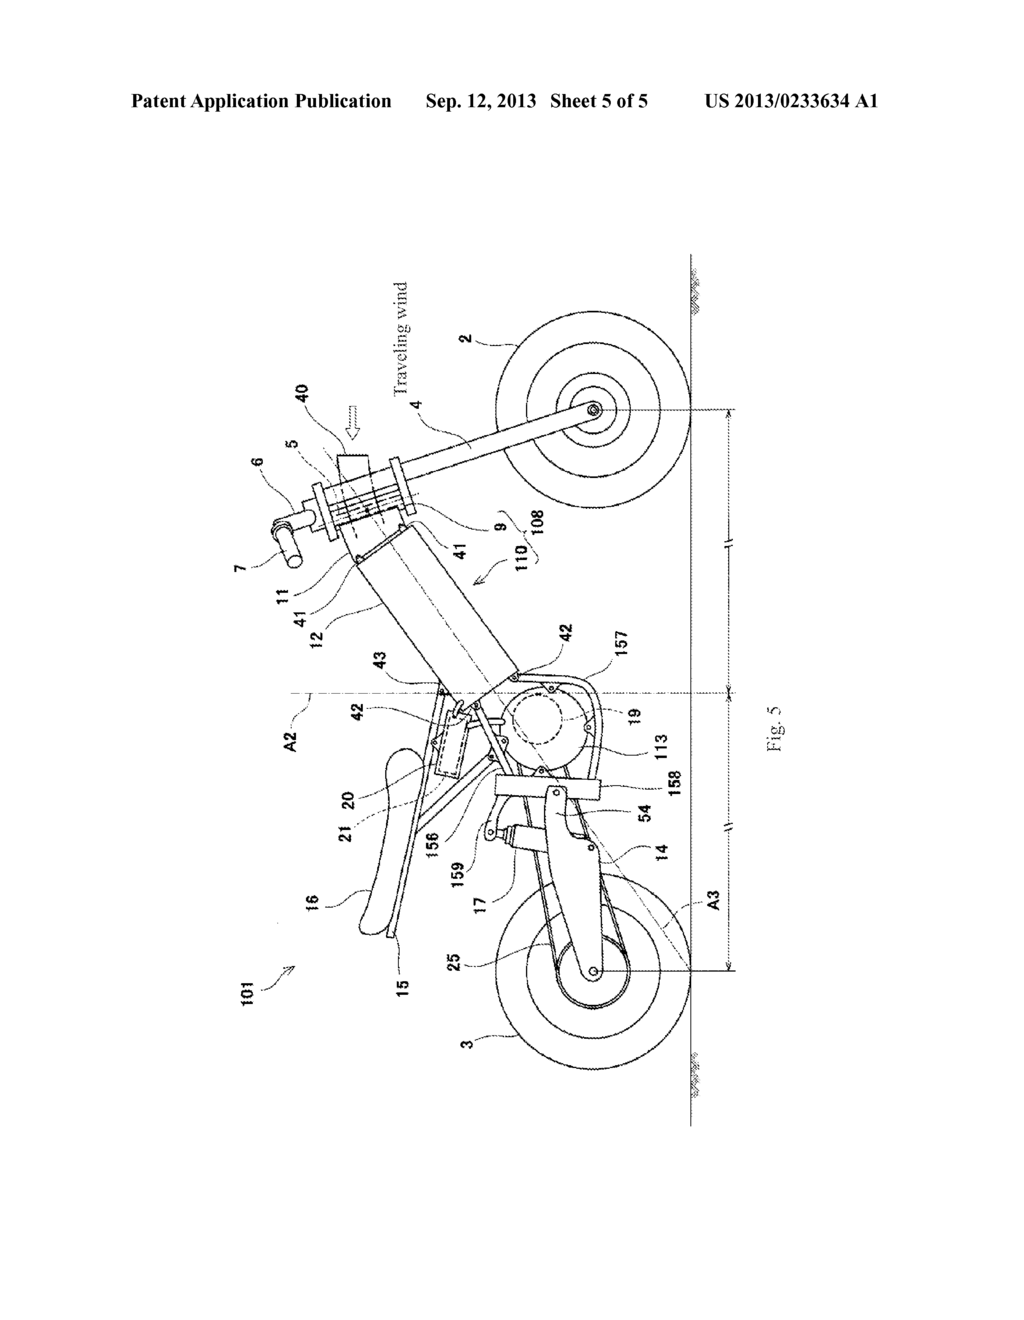 hight resolution of electric motorcycle diagram schematic and image 06 yamaha wiring diagram electric motorcycle diagram